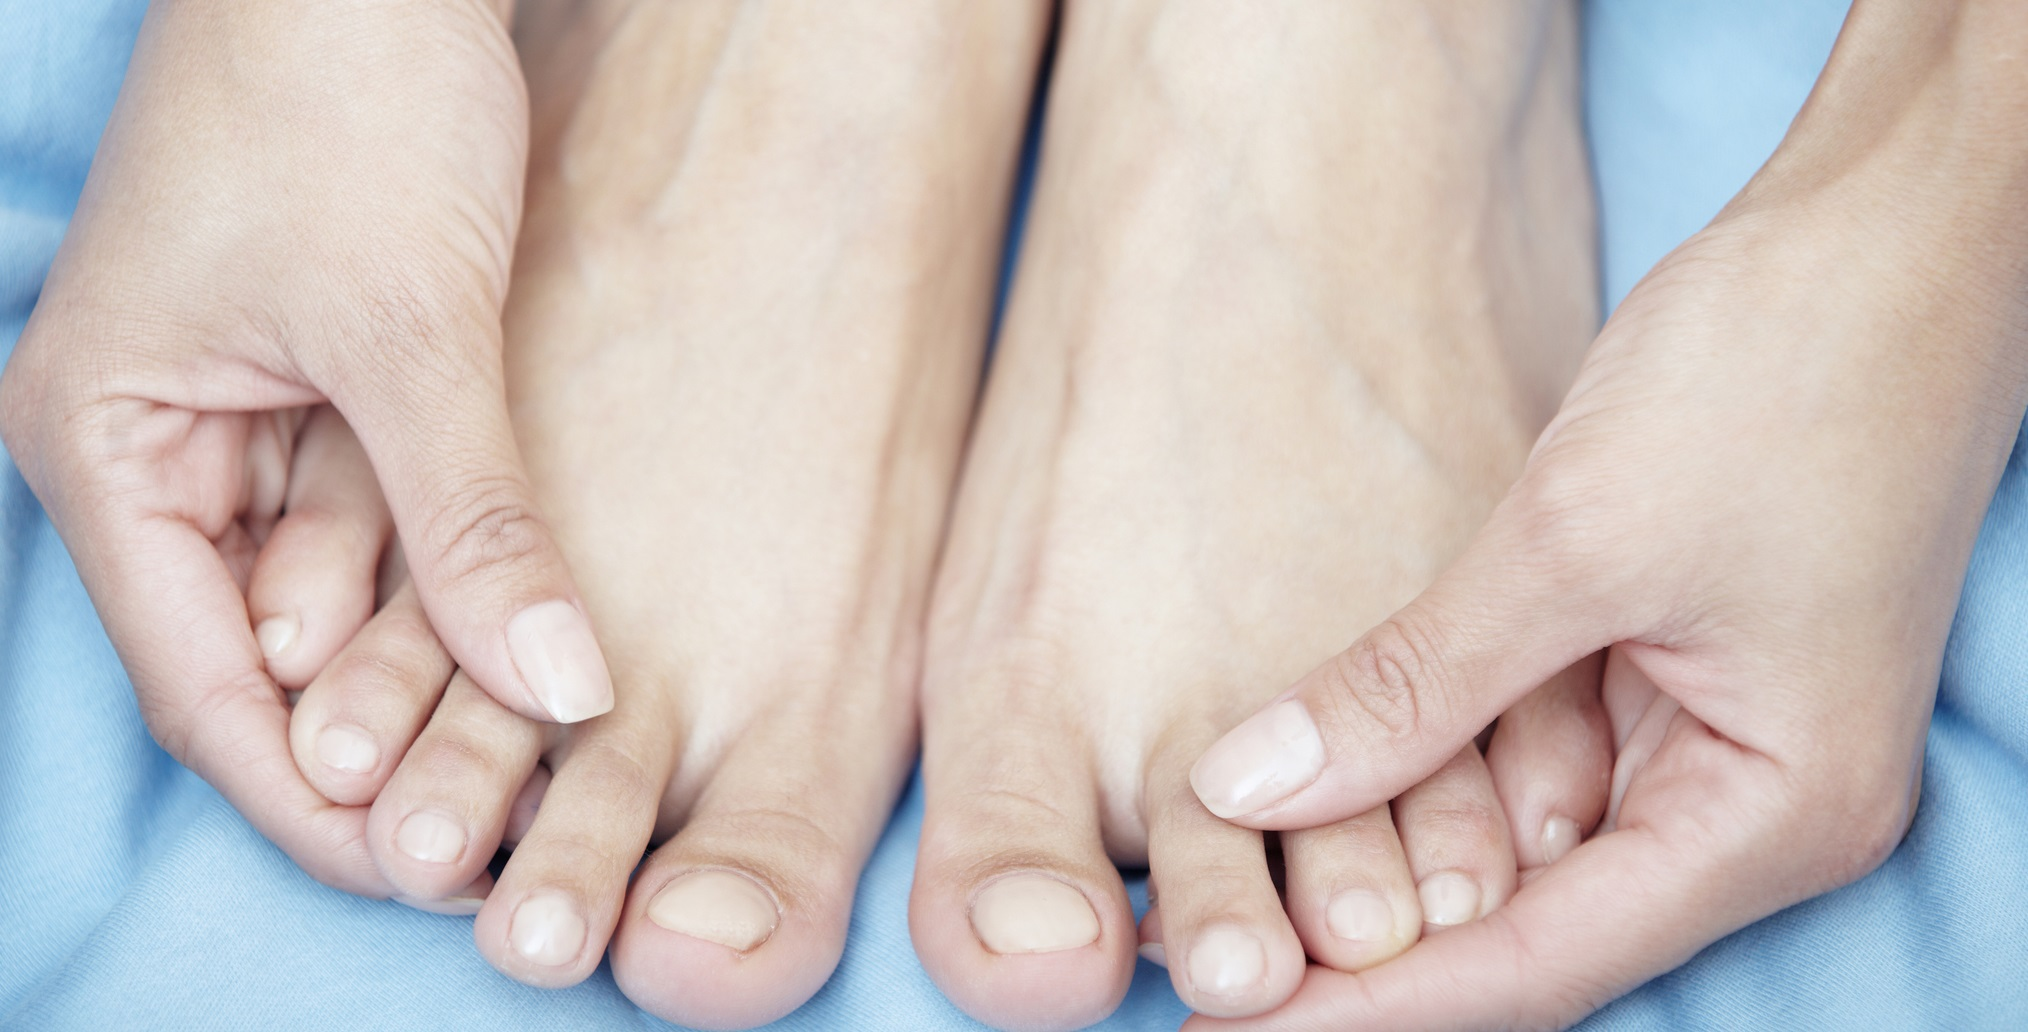 applying soothing oil on feet and nails